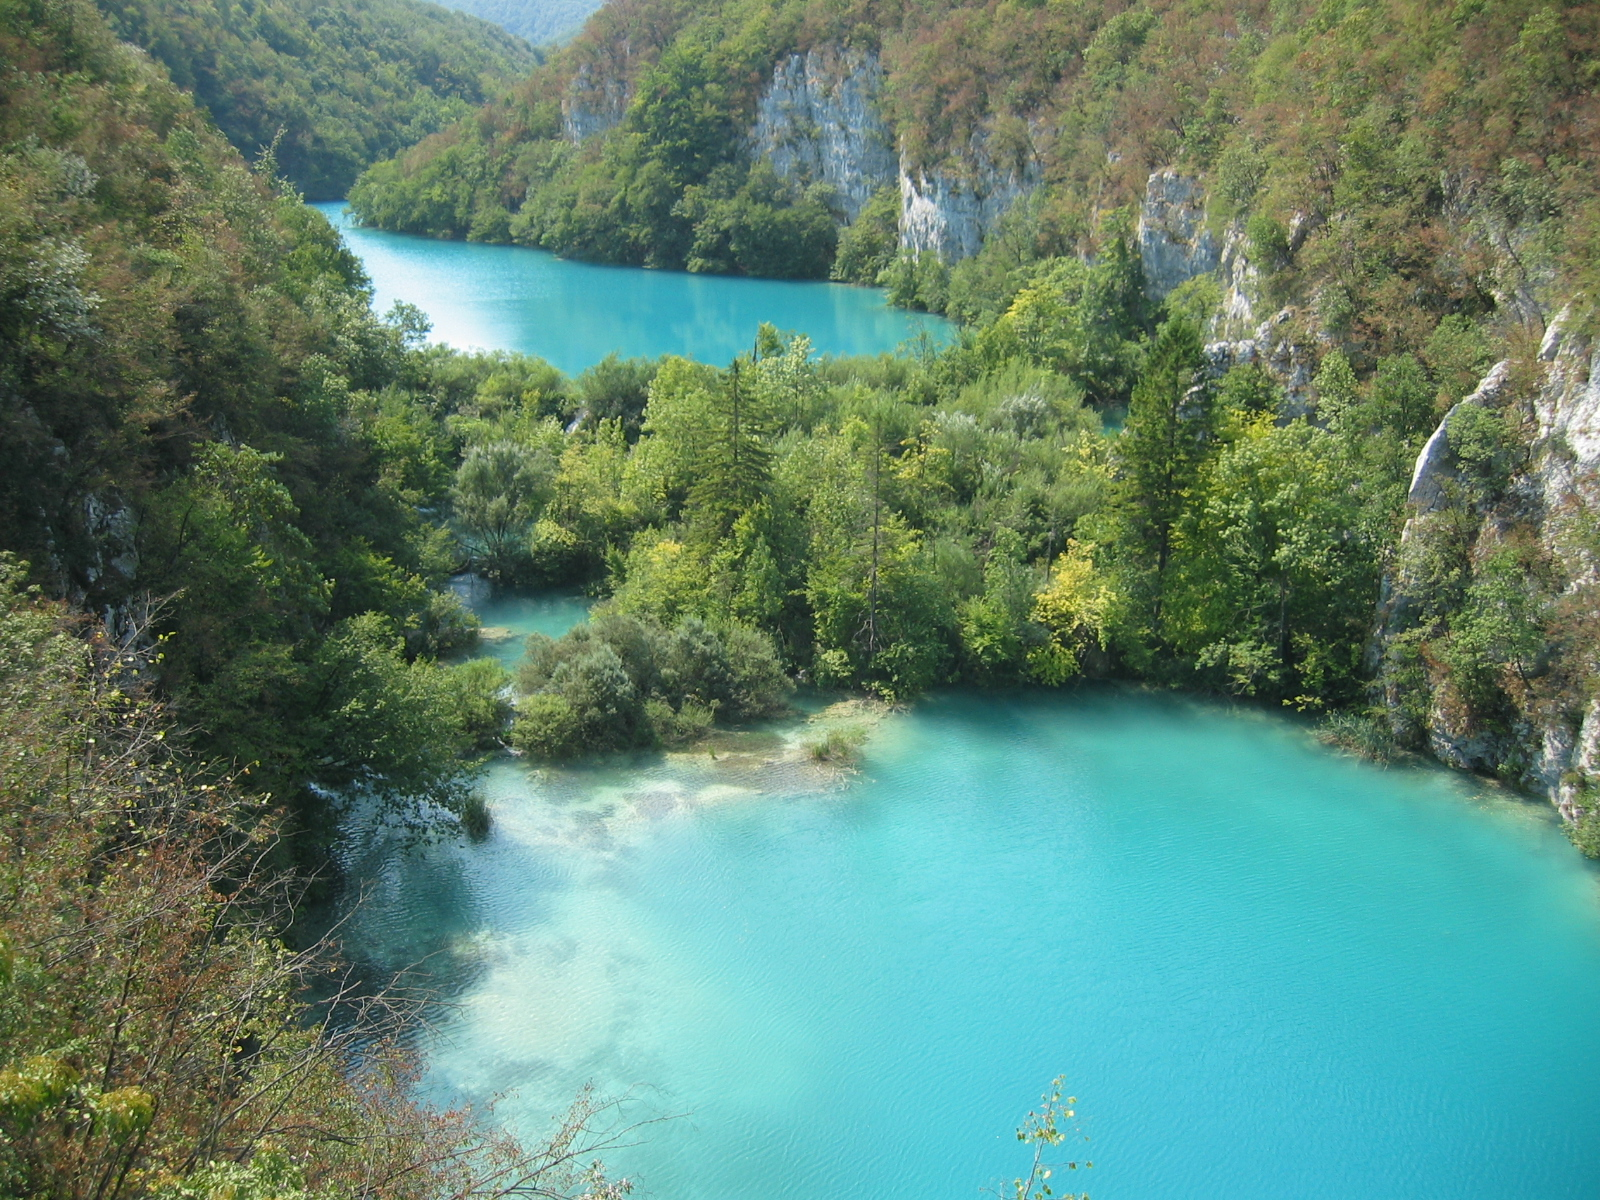 https://upload.wikimedia.org/wikipedia/commons/f/f7/Plitvice-2003.JPG